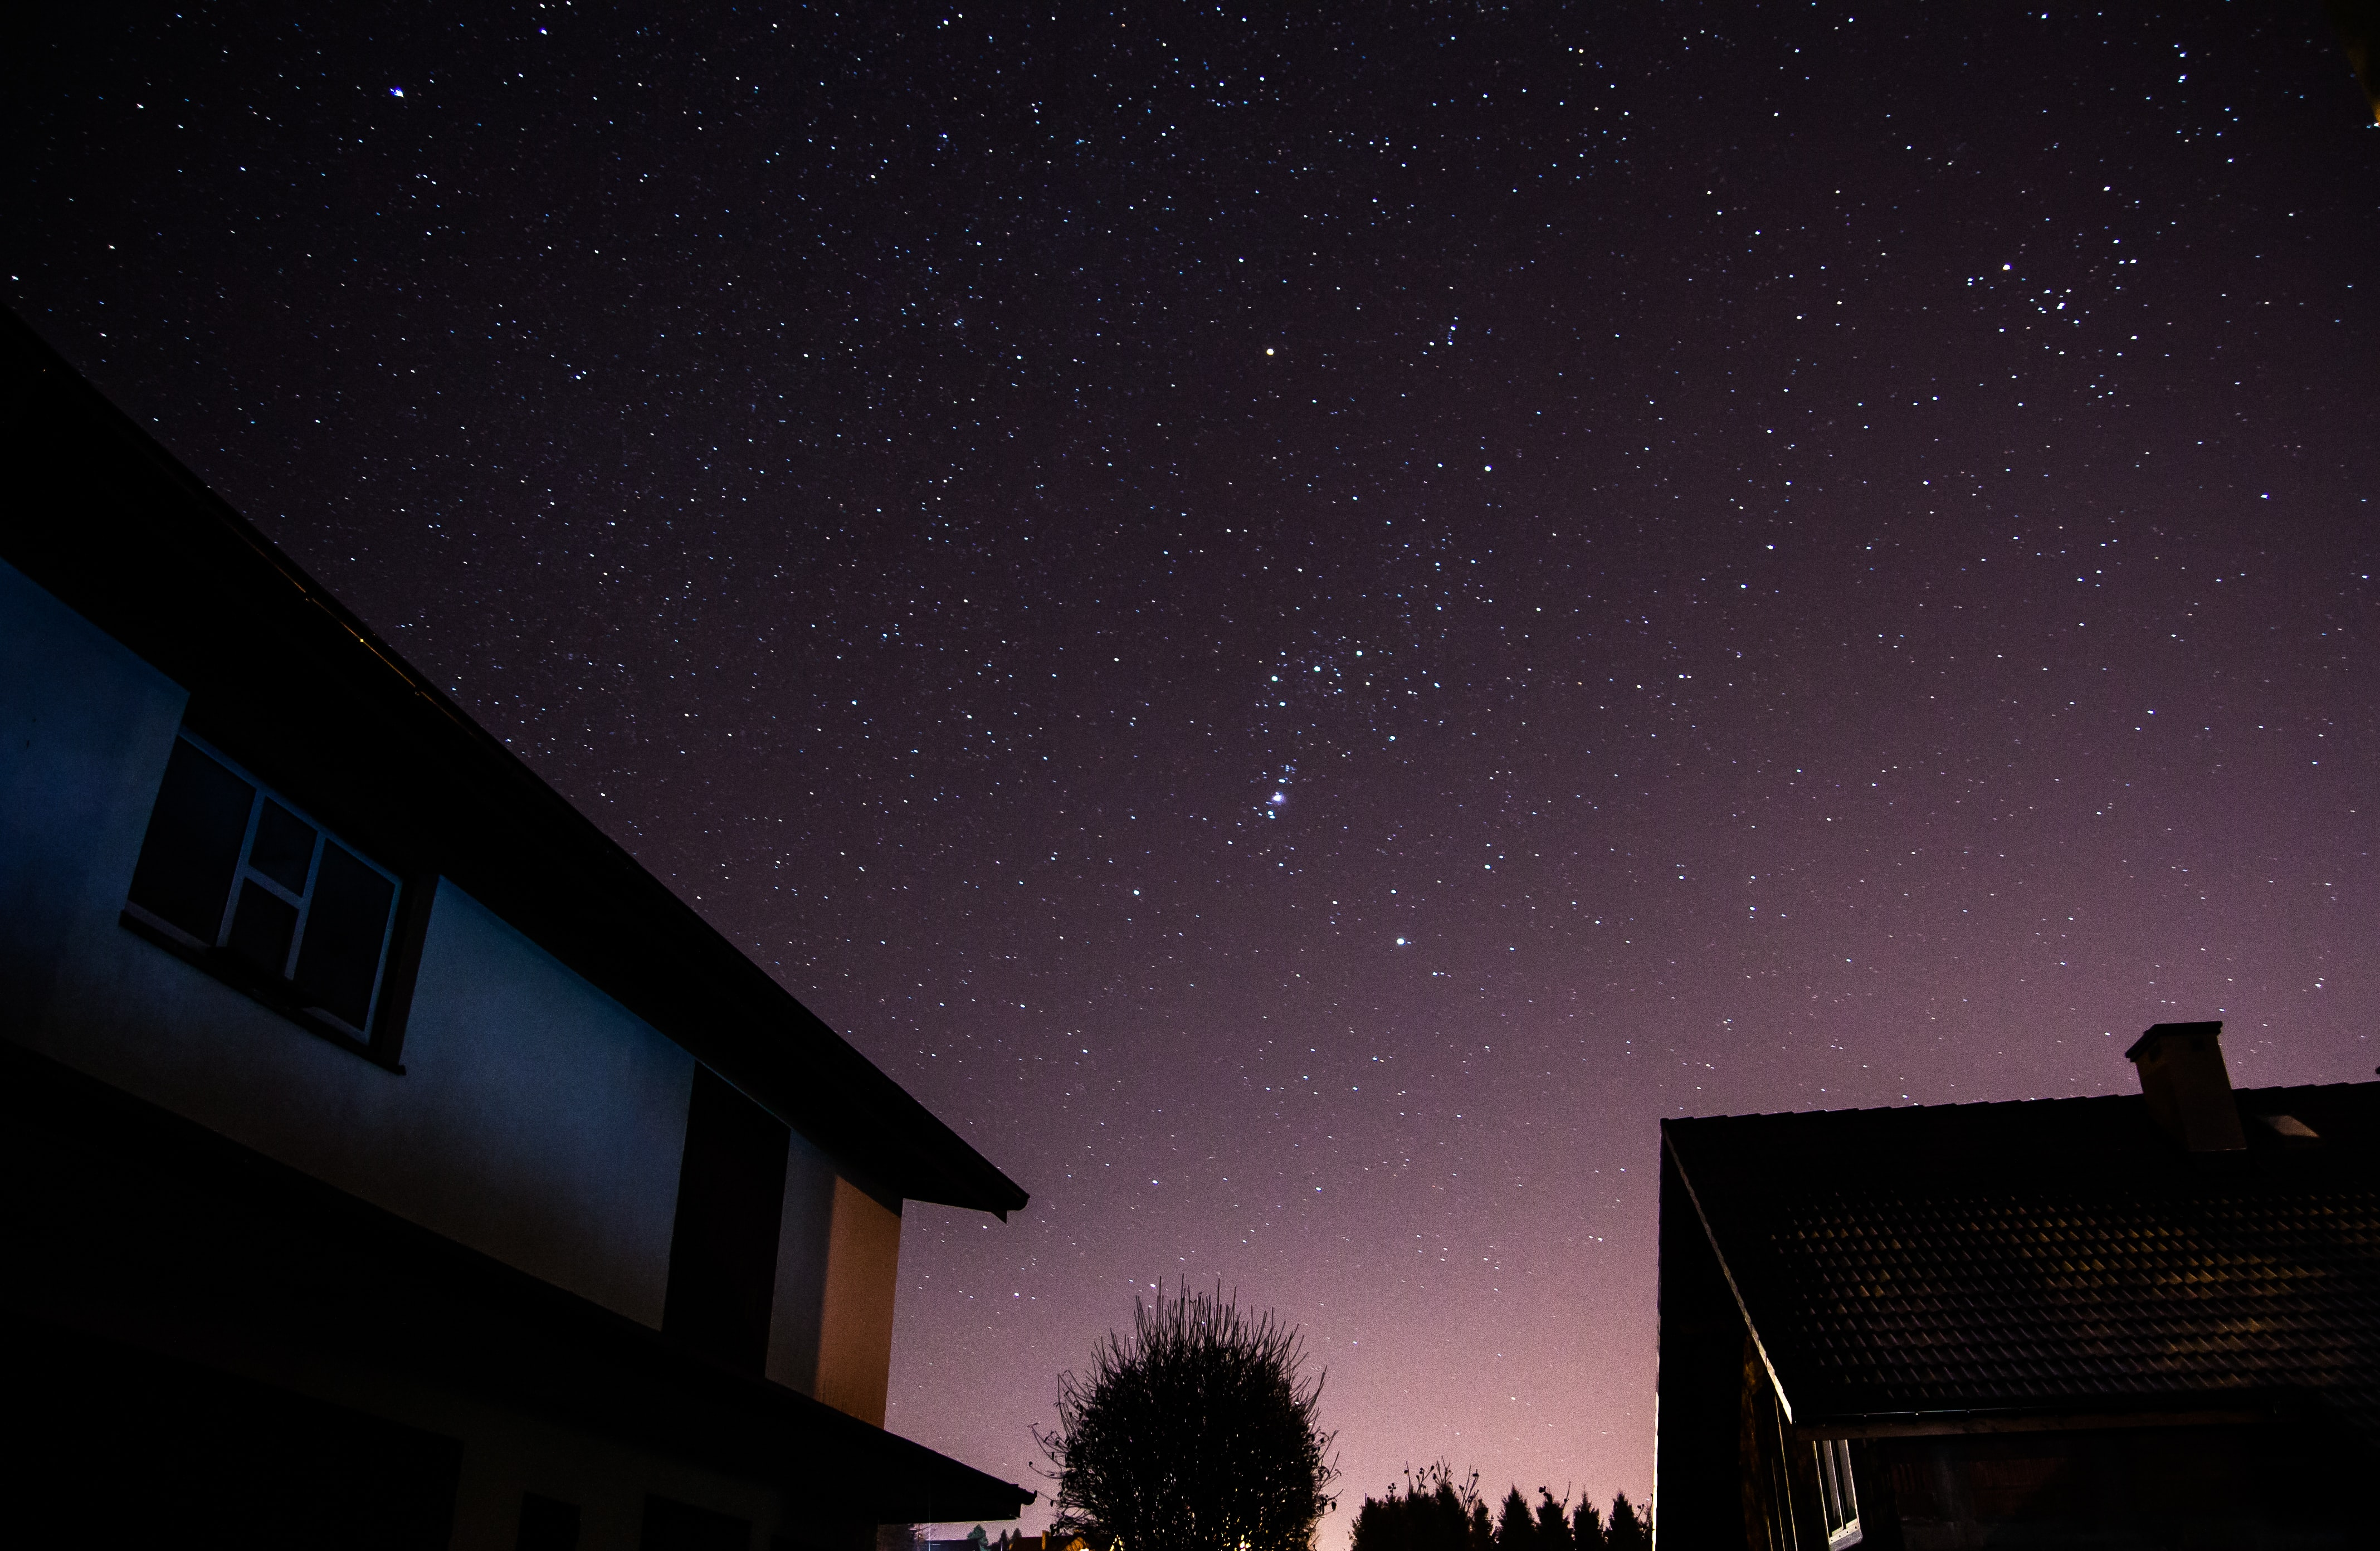 Houses and trees silhouetted against a purple starry night sky